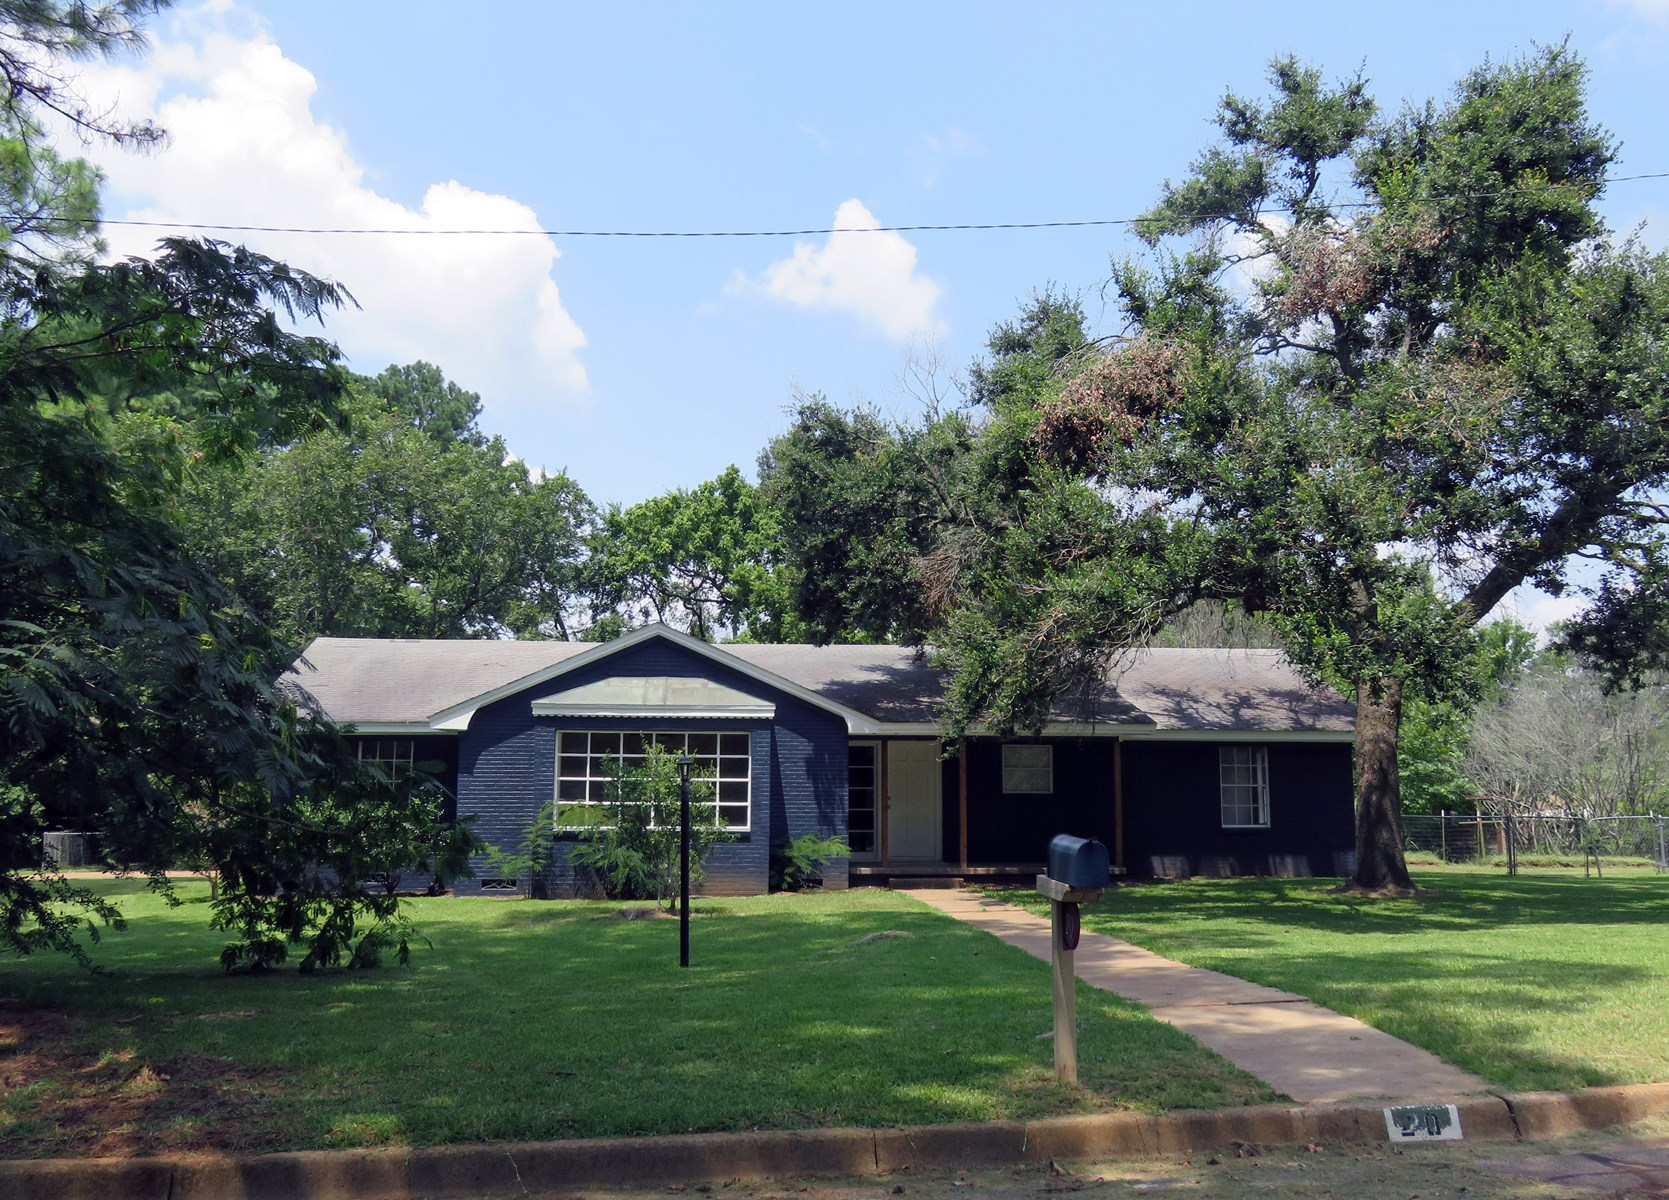 3/2 Home on Large Lot in East Texas for sale